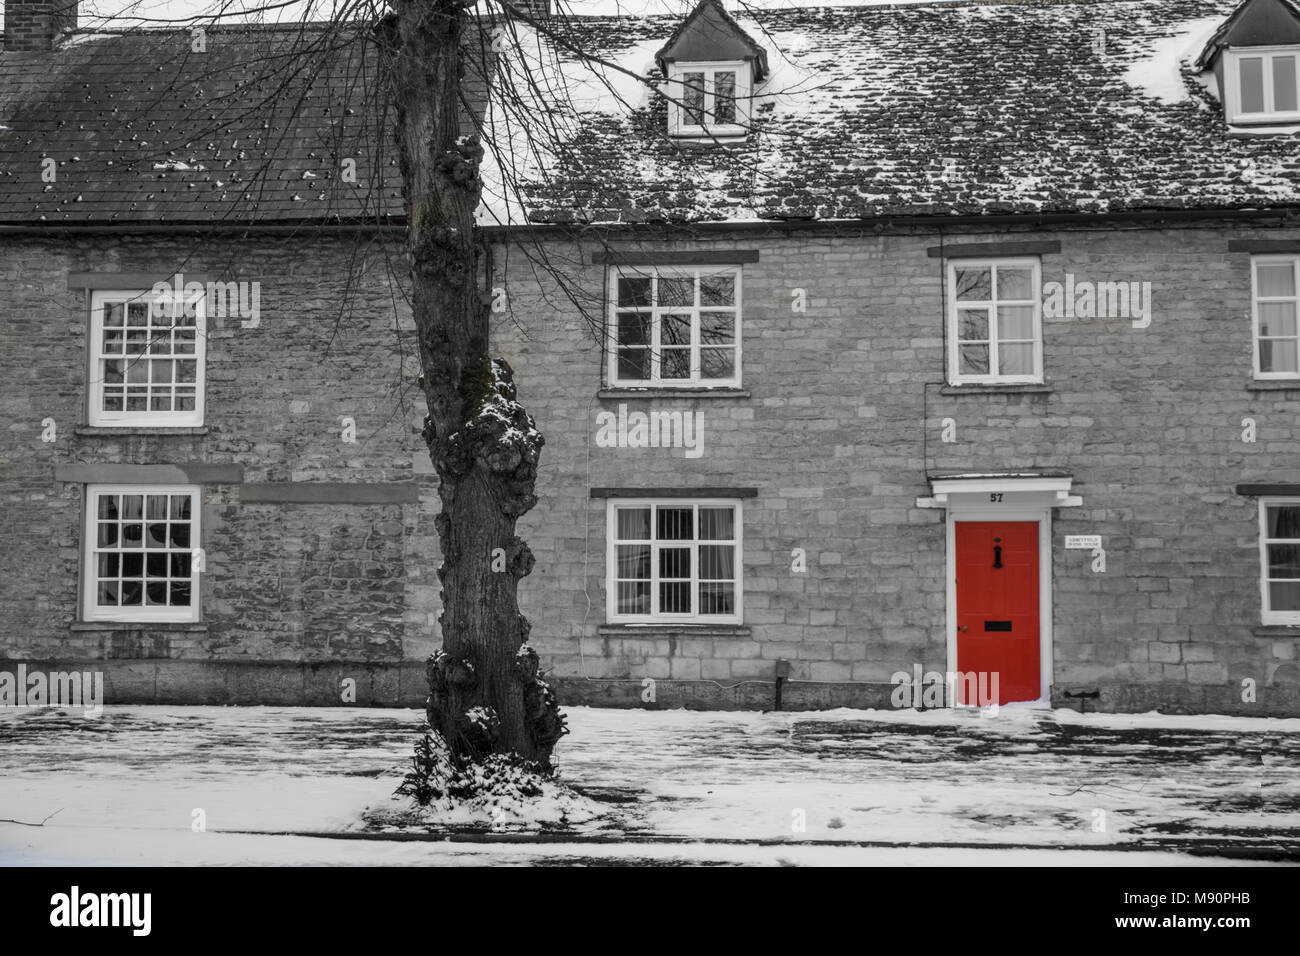 House with red door on Corn Street, Witney, Oxfordshire - Stock Image